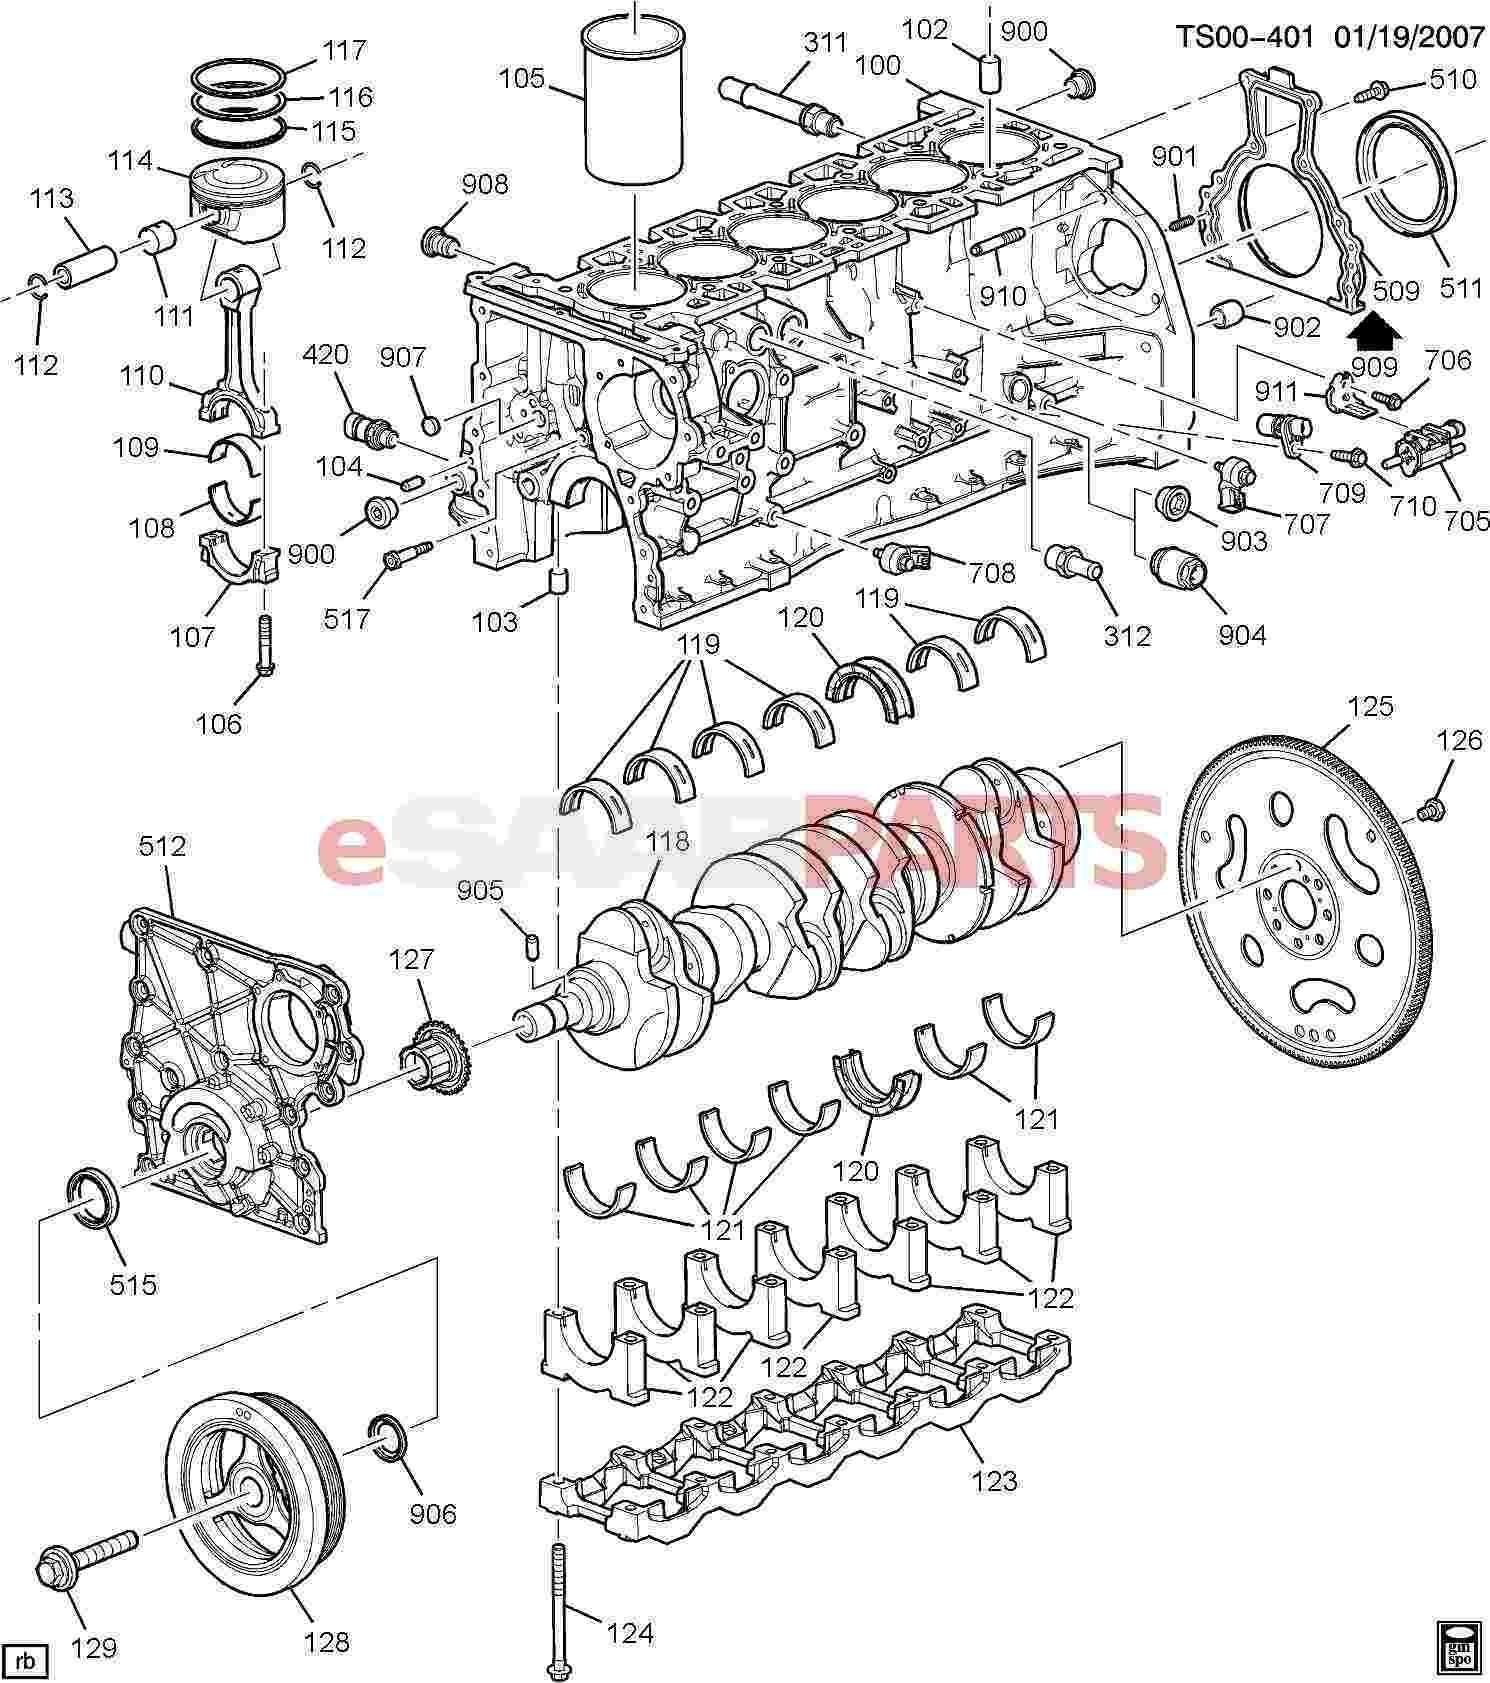 saab parts diagram explore schematic wiring diagram u2022 rh webwiringdiagram today saab 9000 parts catalog saab 9000 parts list